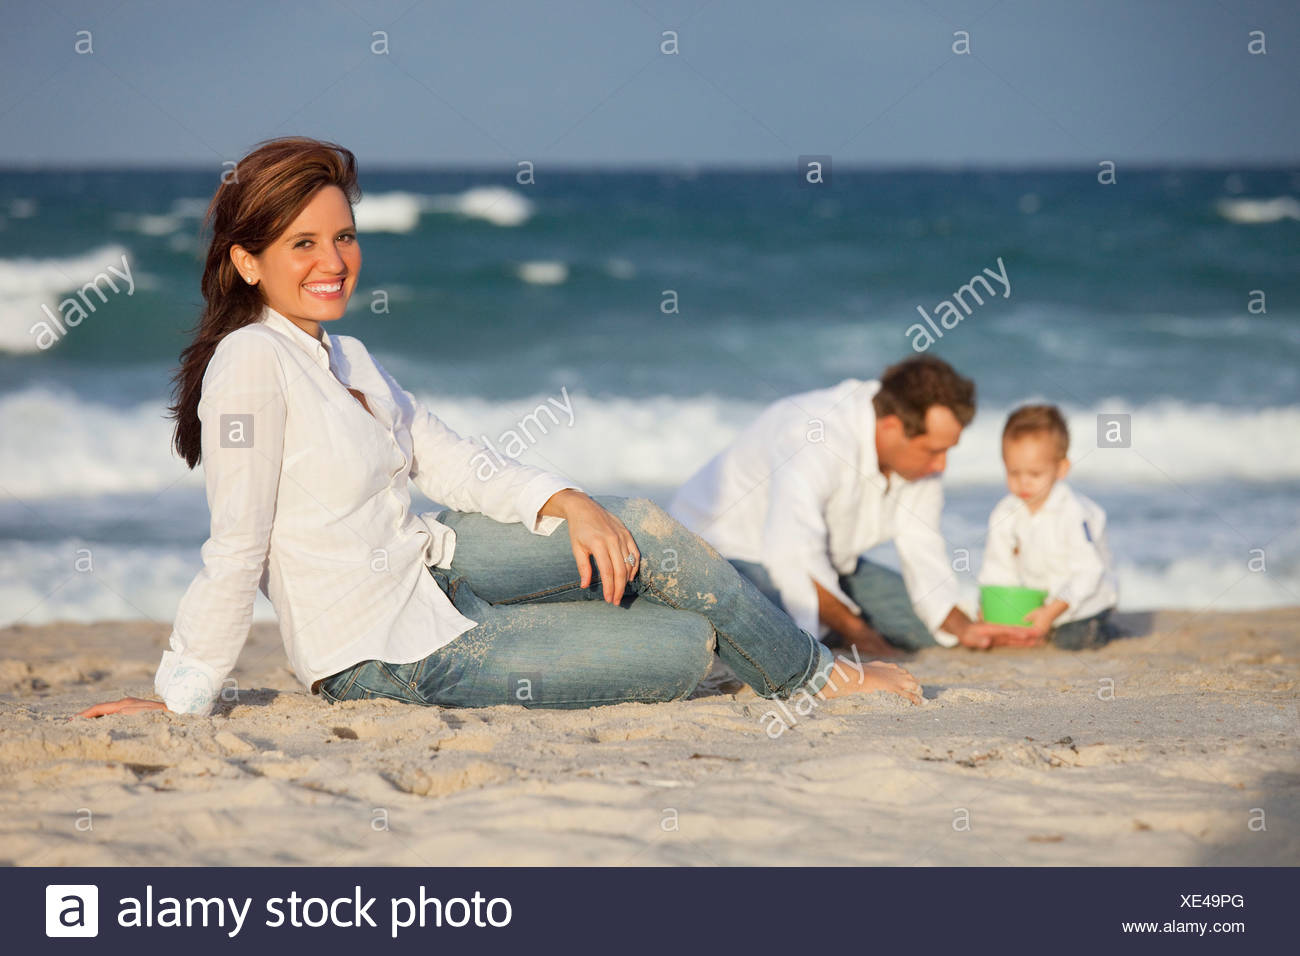 Fort Lauderdale, Florida, United States Of America; A Woman On The Beach With Her Family - Stock Image